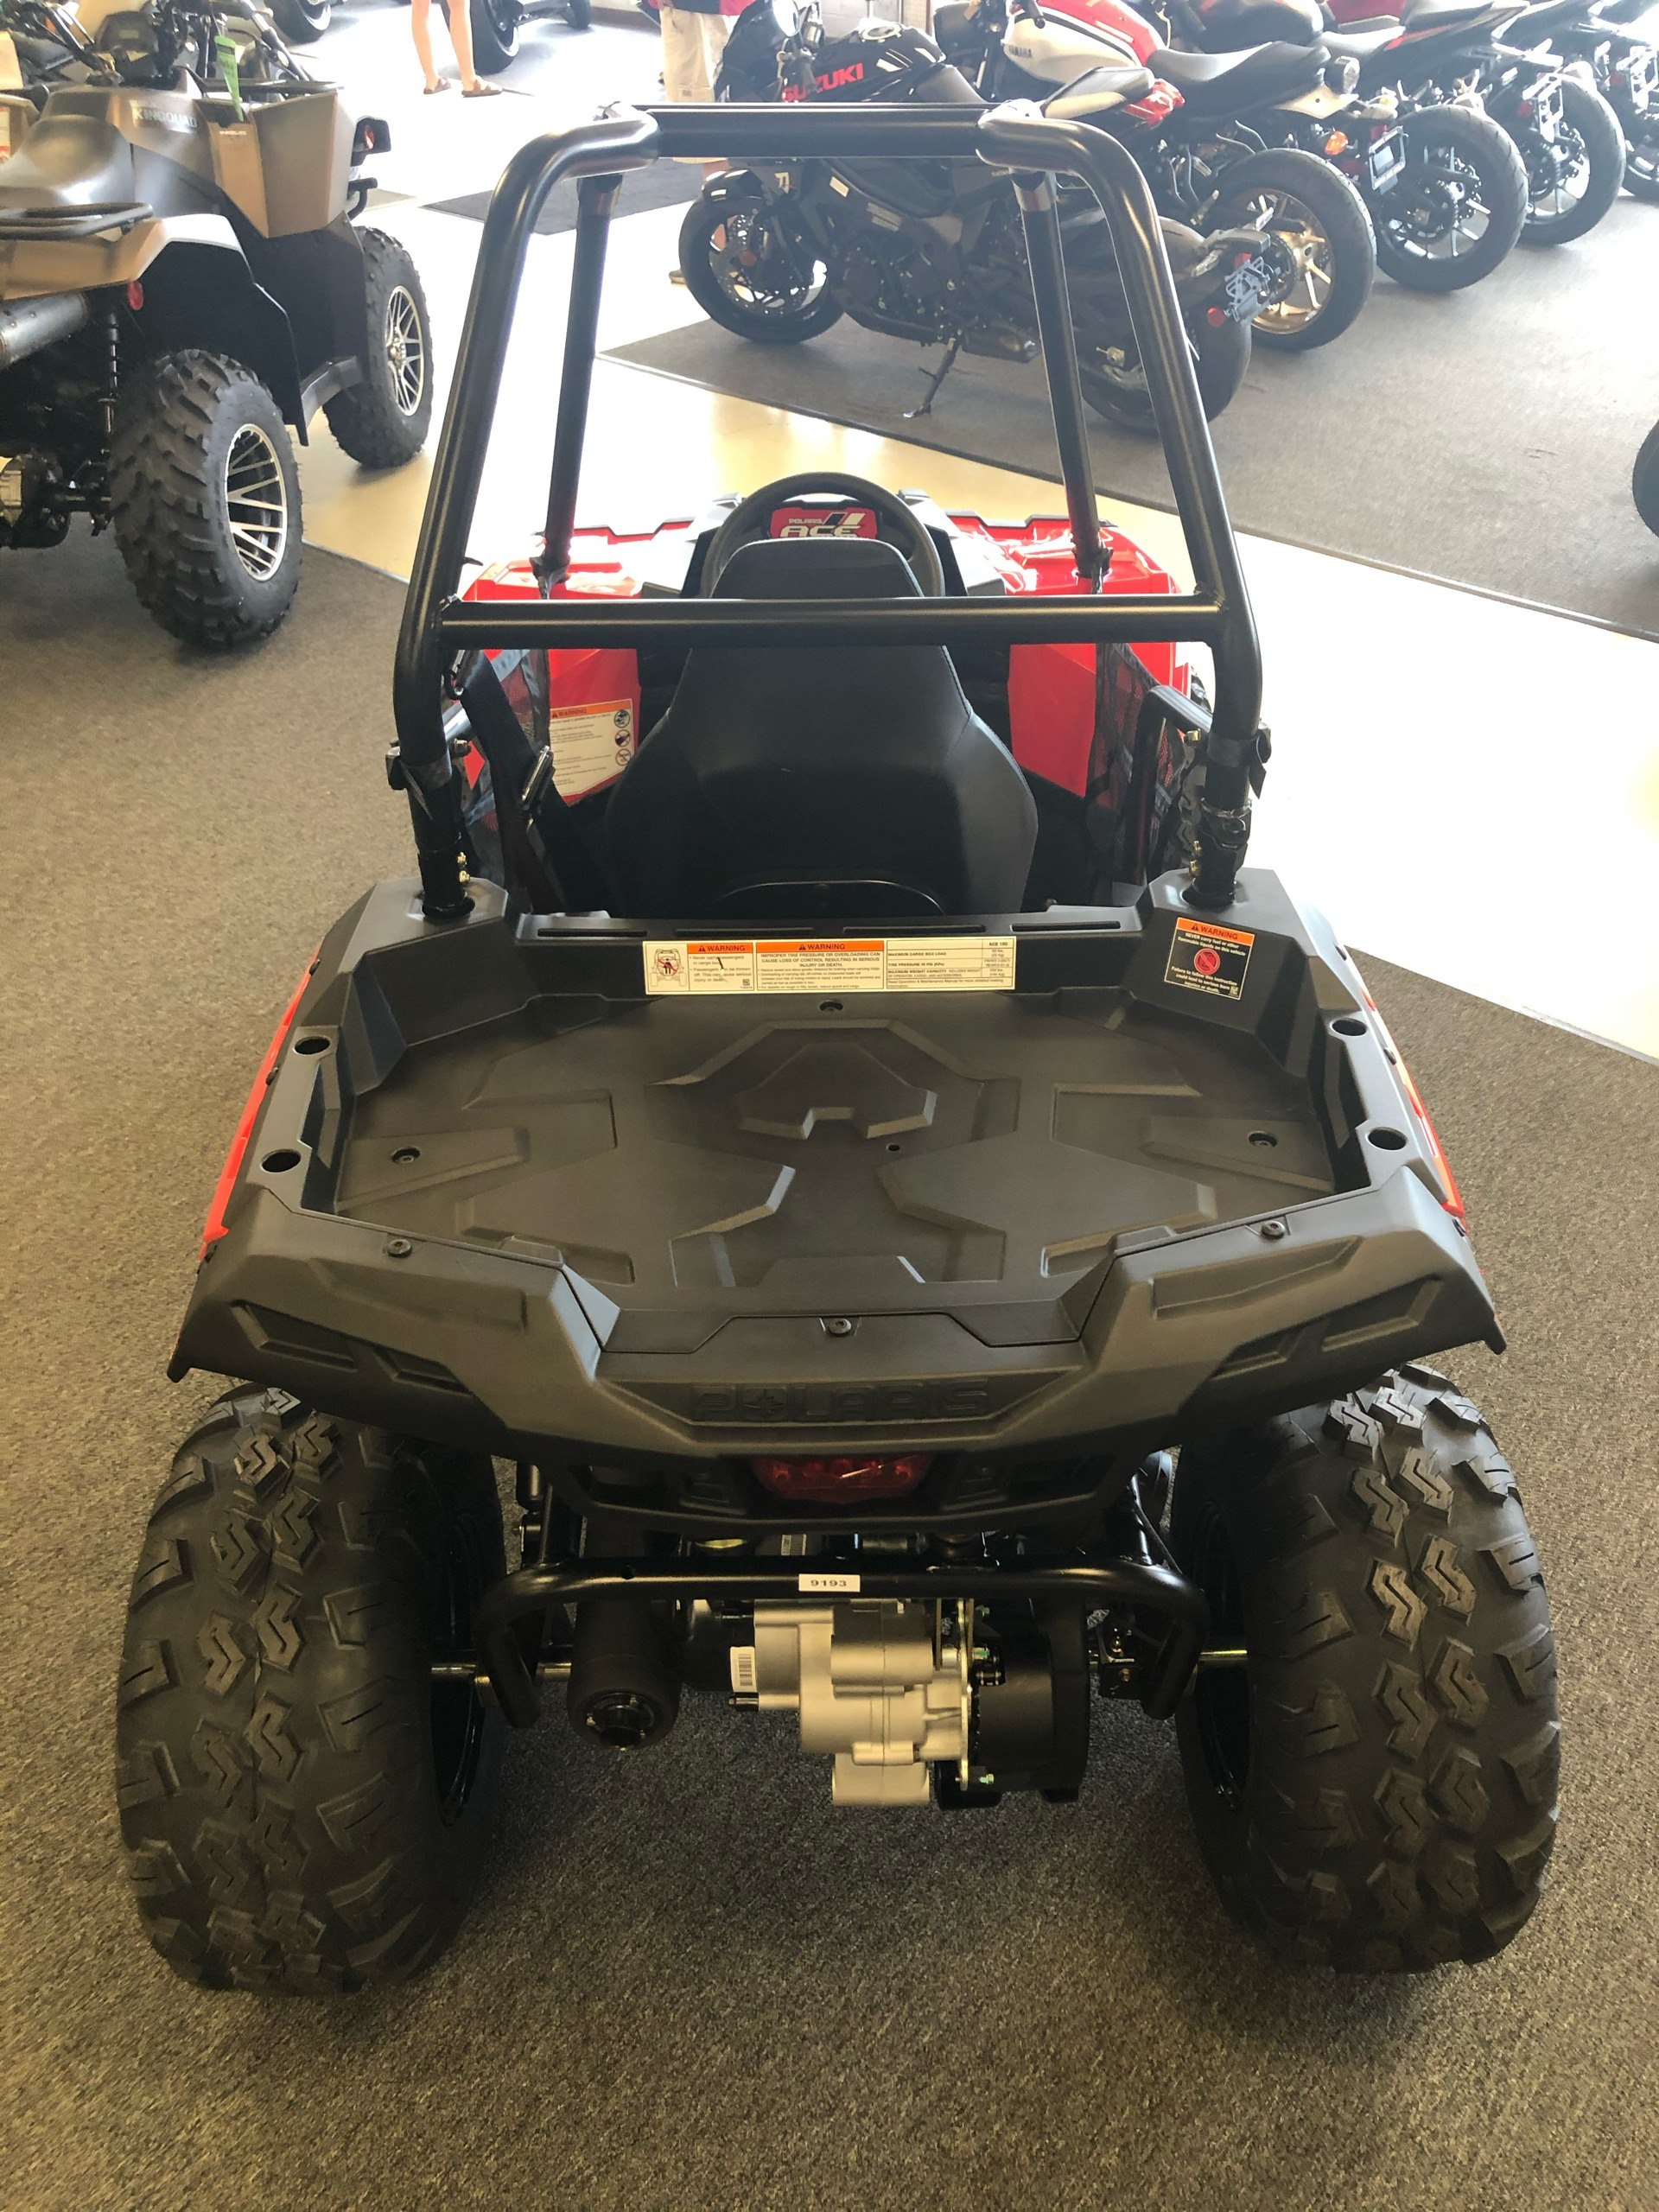 2019 Polaris Ace 150 EFI in Elkhart, Indiana - Photo 4